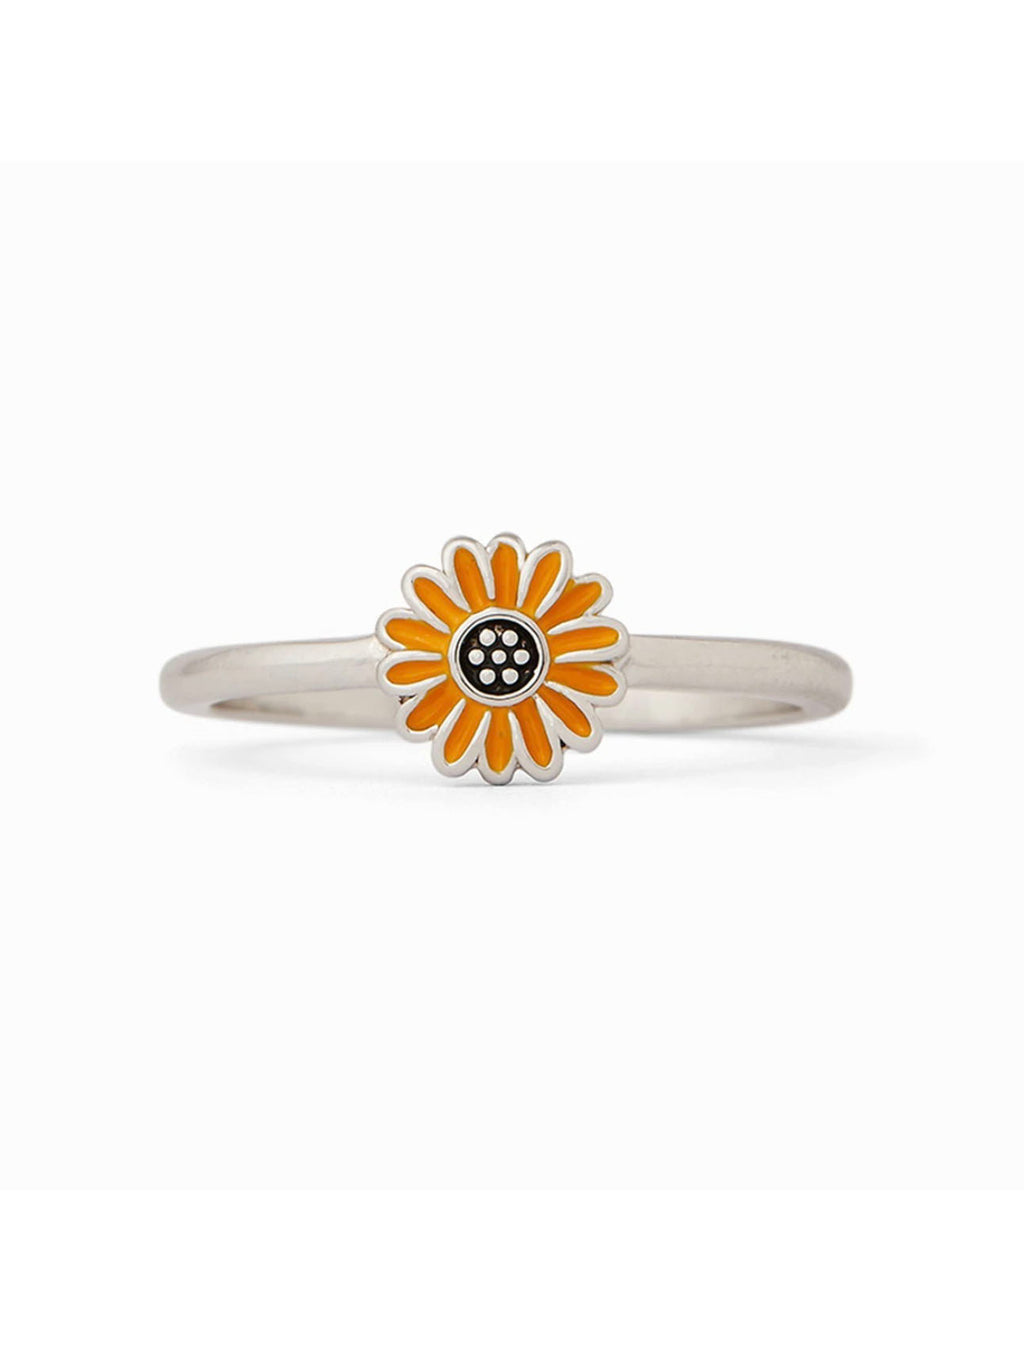 Pura Vida Sunflower Ring in Silver